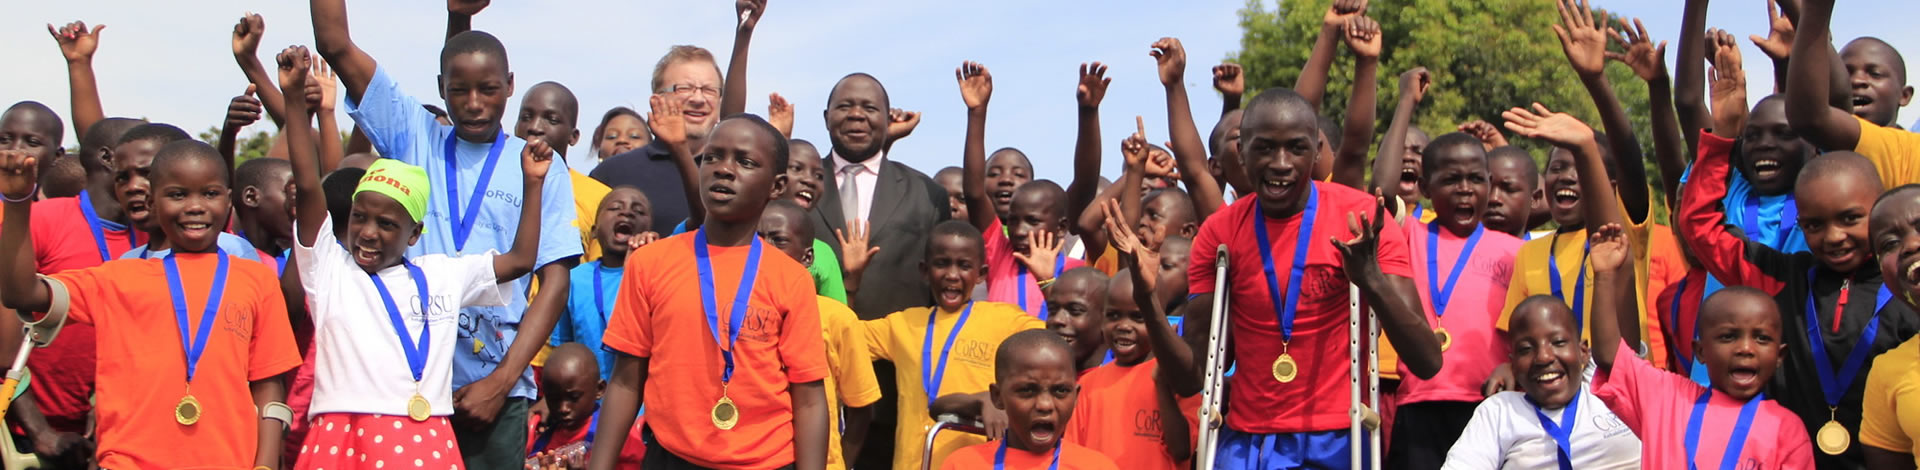 Children with disabilities cheering and wearing medals after disability sports event at CORSU hospital in Uganda.